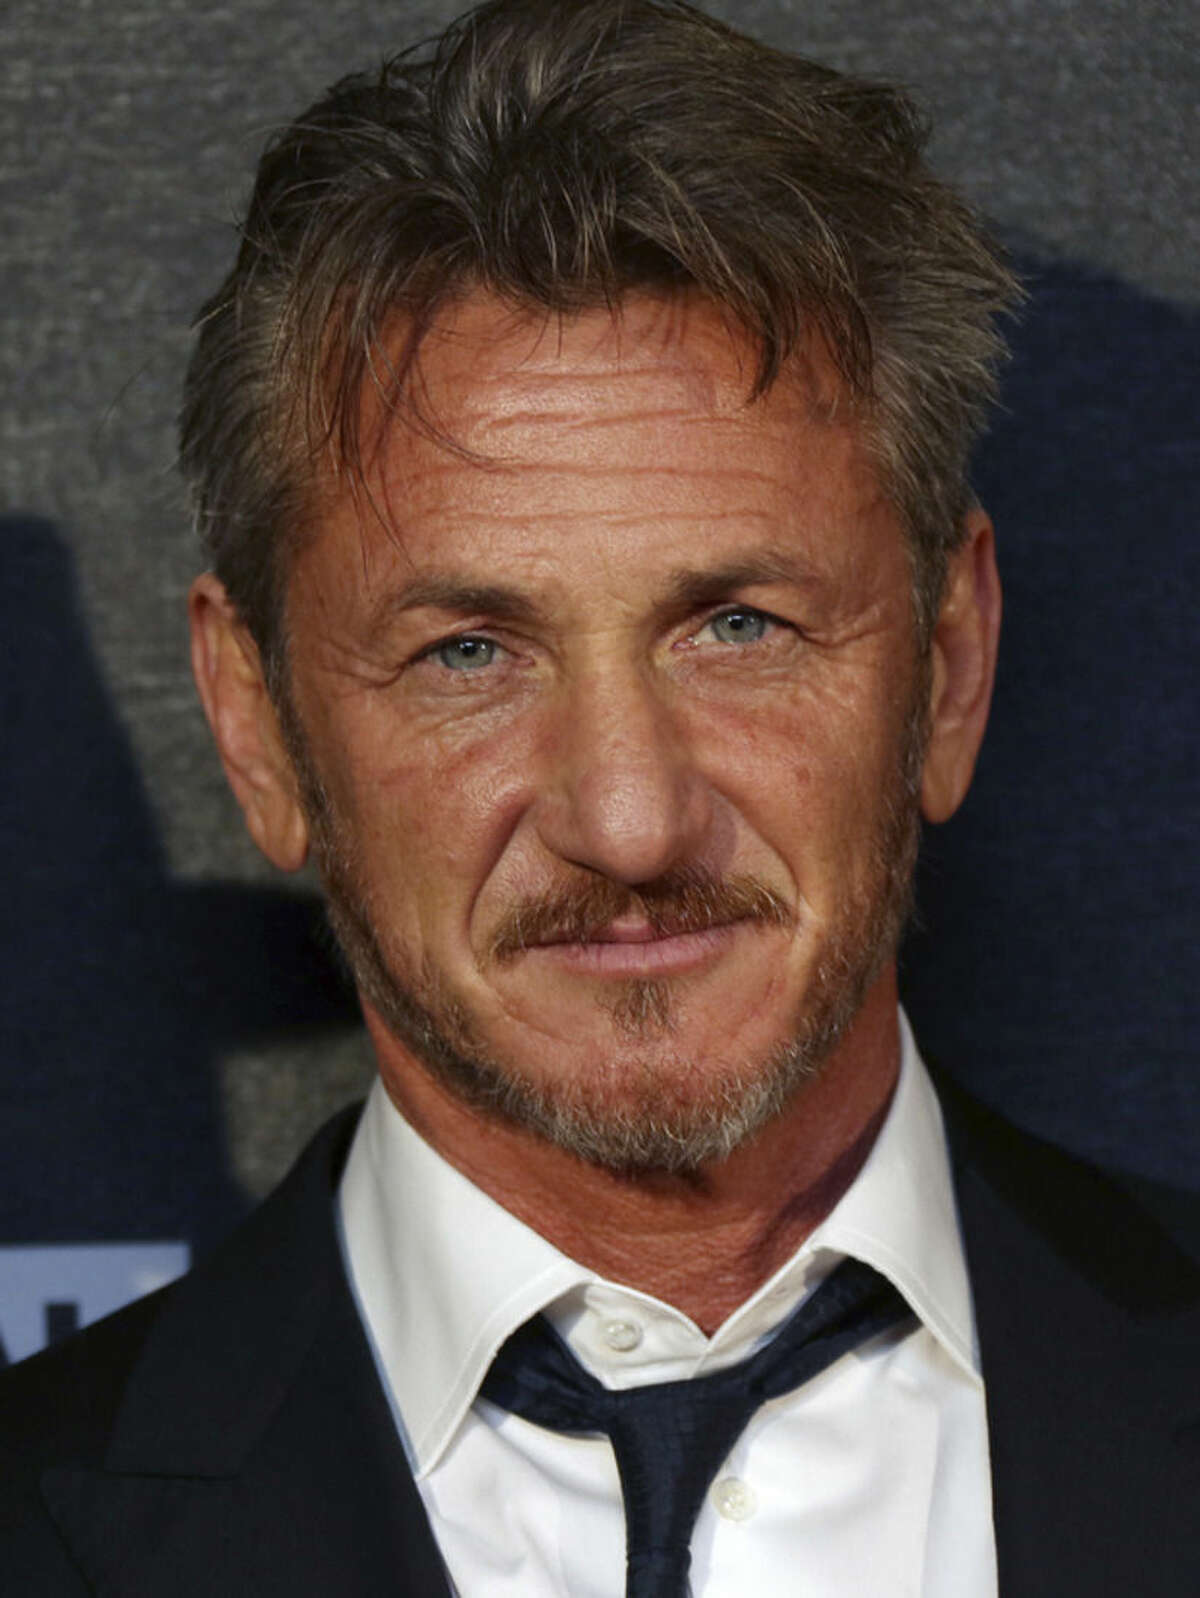 """FILE - In this Feb. 16, 2015 file photo, actor Sean Penn arrives for the World Premiere of """"The Gunman"""" at the BFI south bank cinema, in London. Penn surfs, shoots, sprints, punches and fights for his life in the geopolitical thriller in theaters on Friday, March 20, 2015. (Photo by Joel Ryan/Invision/AP, File)"""